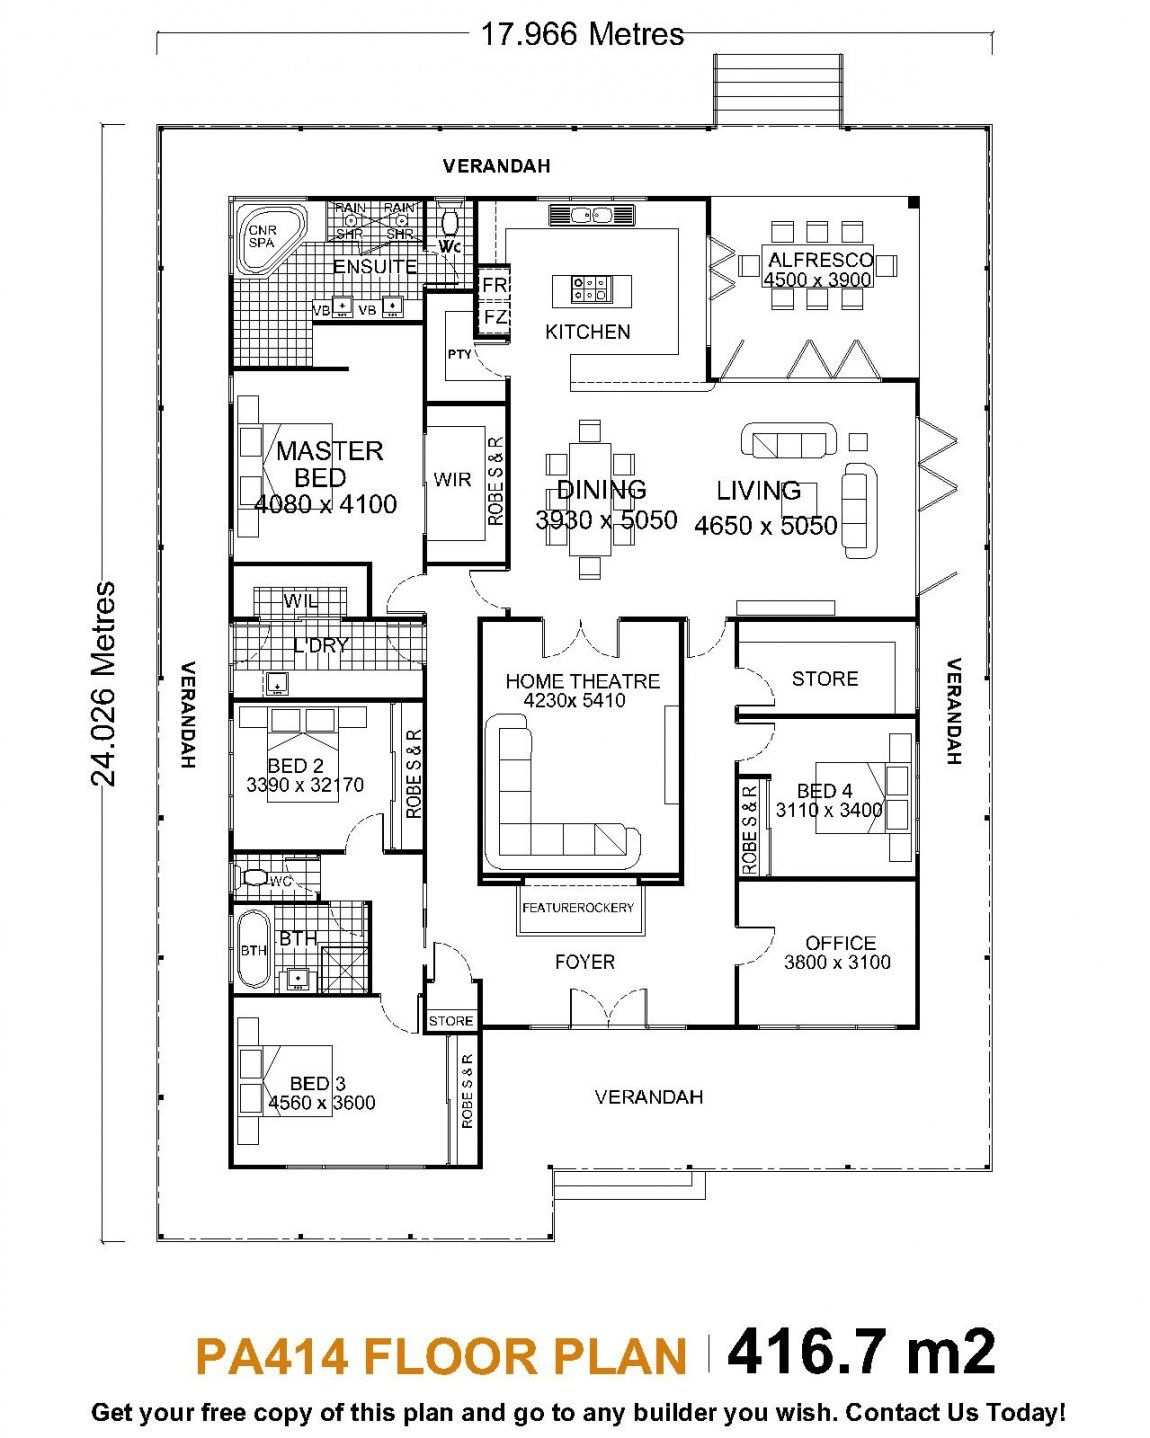 Complete House Plans Pdf Bedroom Modern South Africa Free Download Plan Absolutely Smart Single Story Incredible Ideas Dogs Cuteness Bedroom House Plans Casas